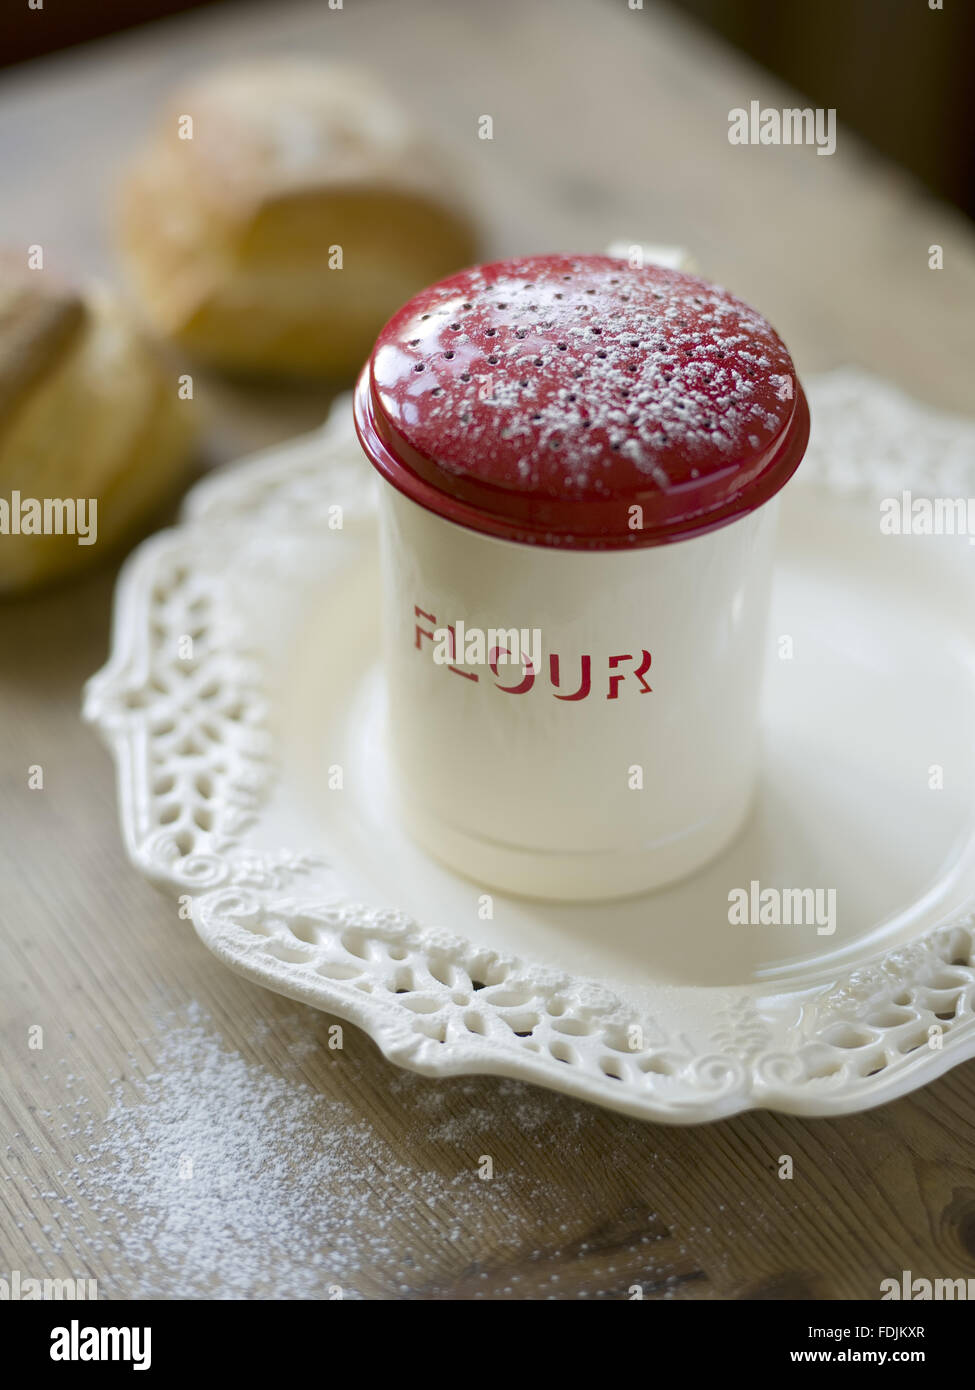 Retro-styled flour shaker. Product available in selected National Trust shops. - Stock Image